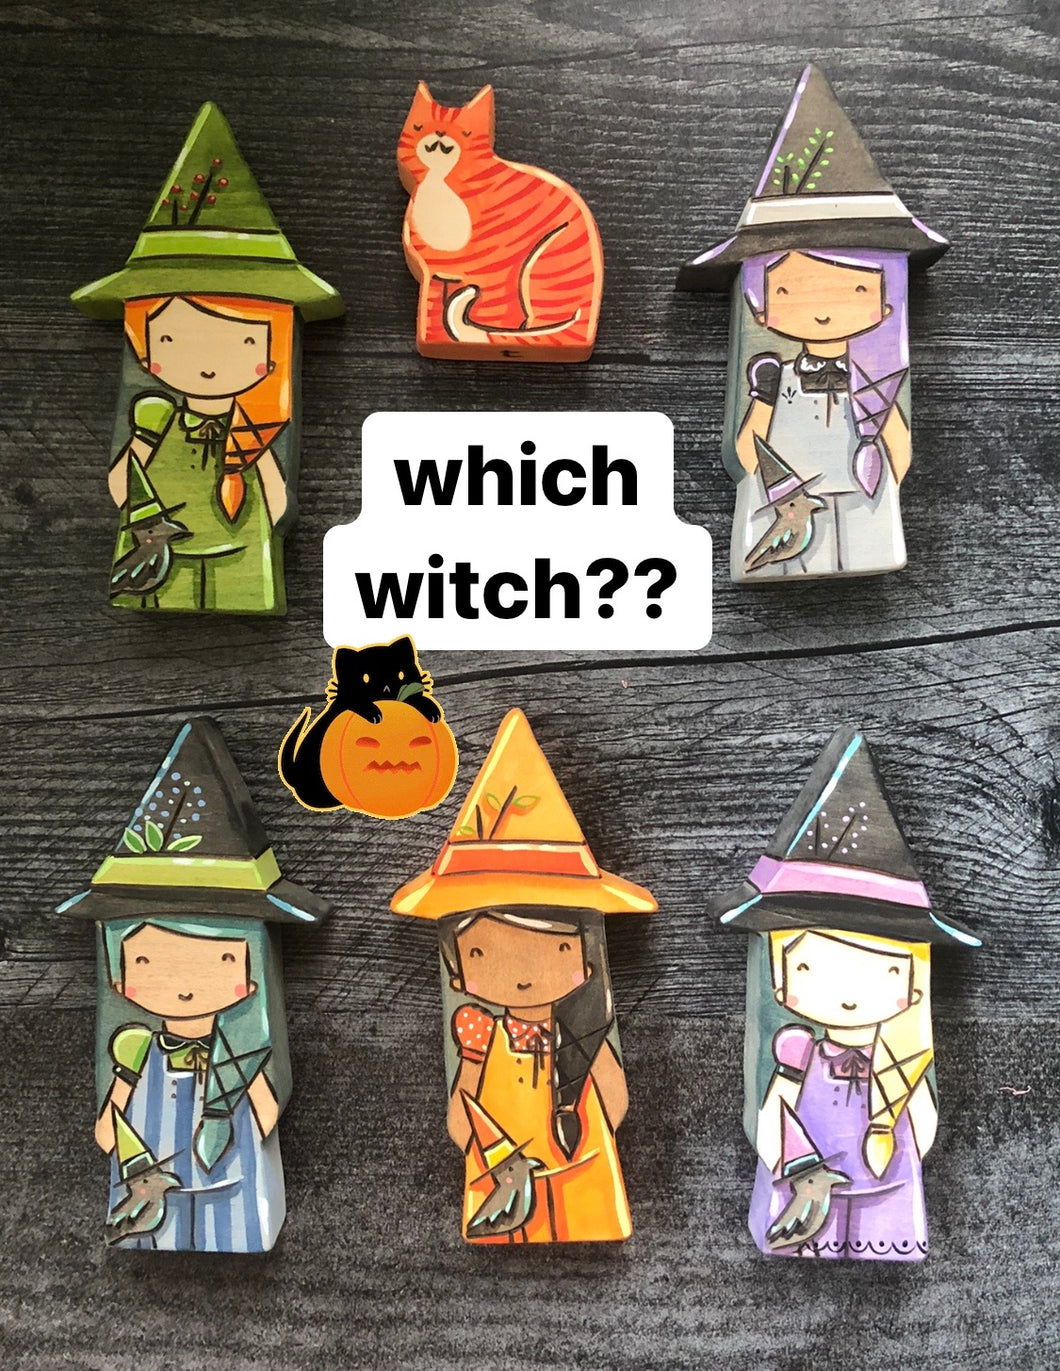 Which Witch??!!